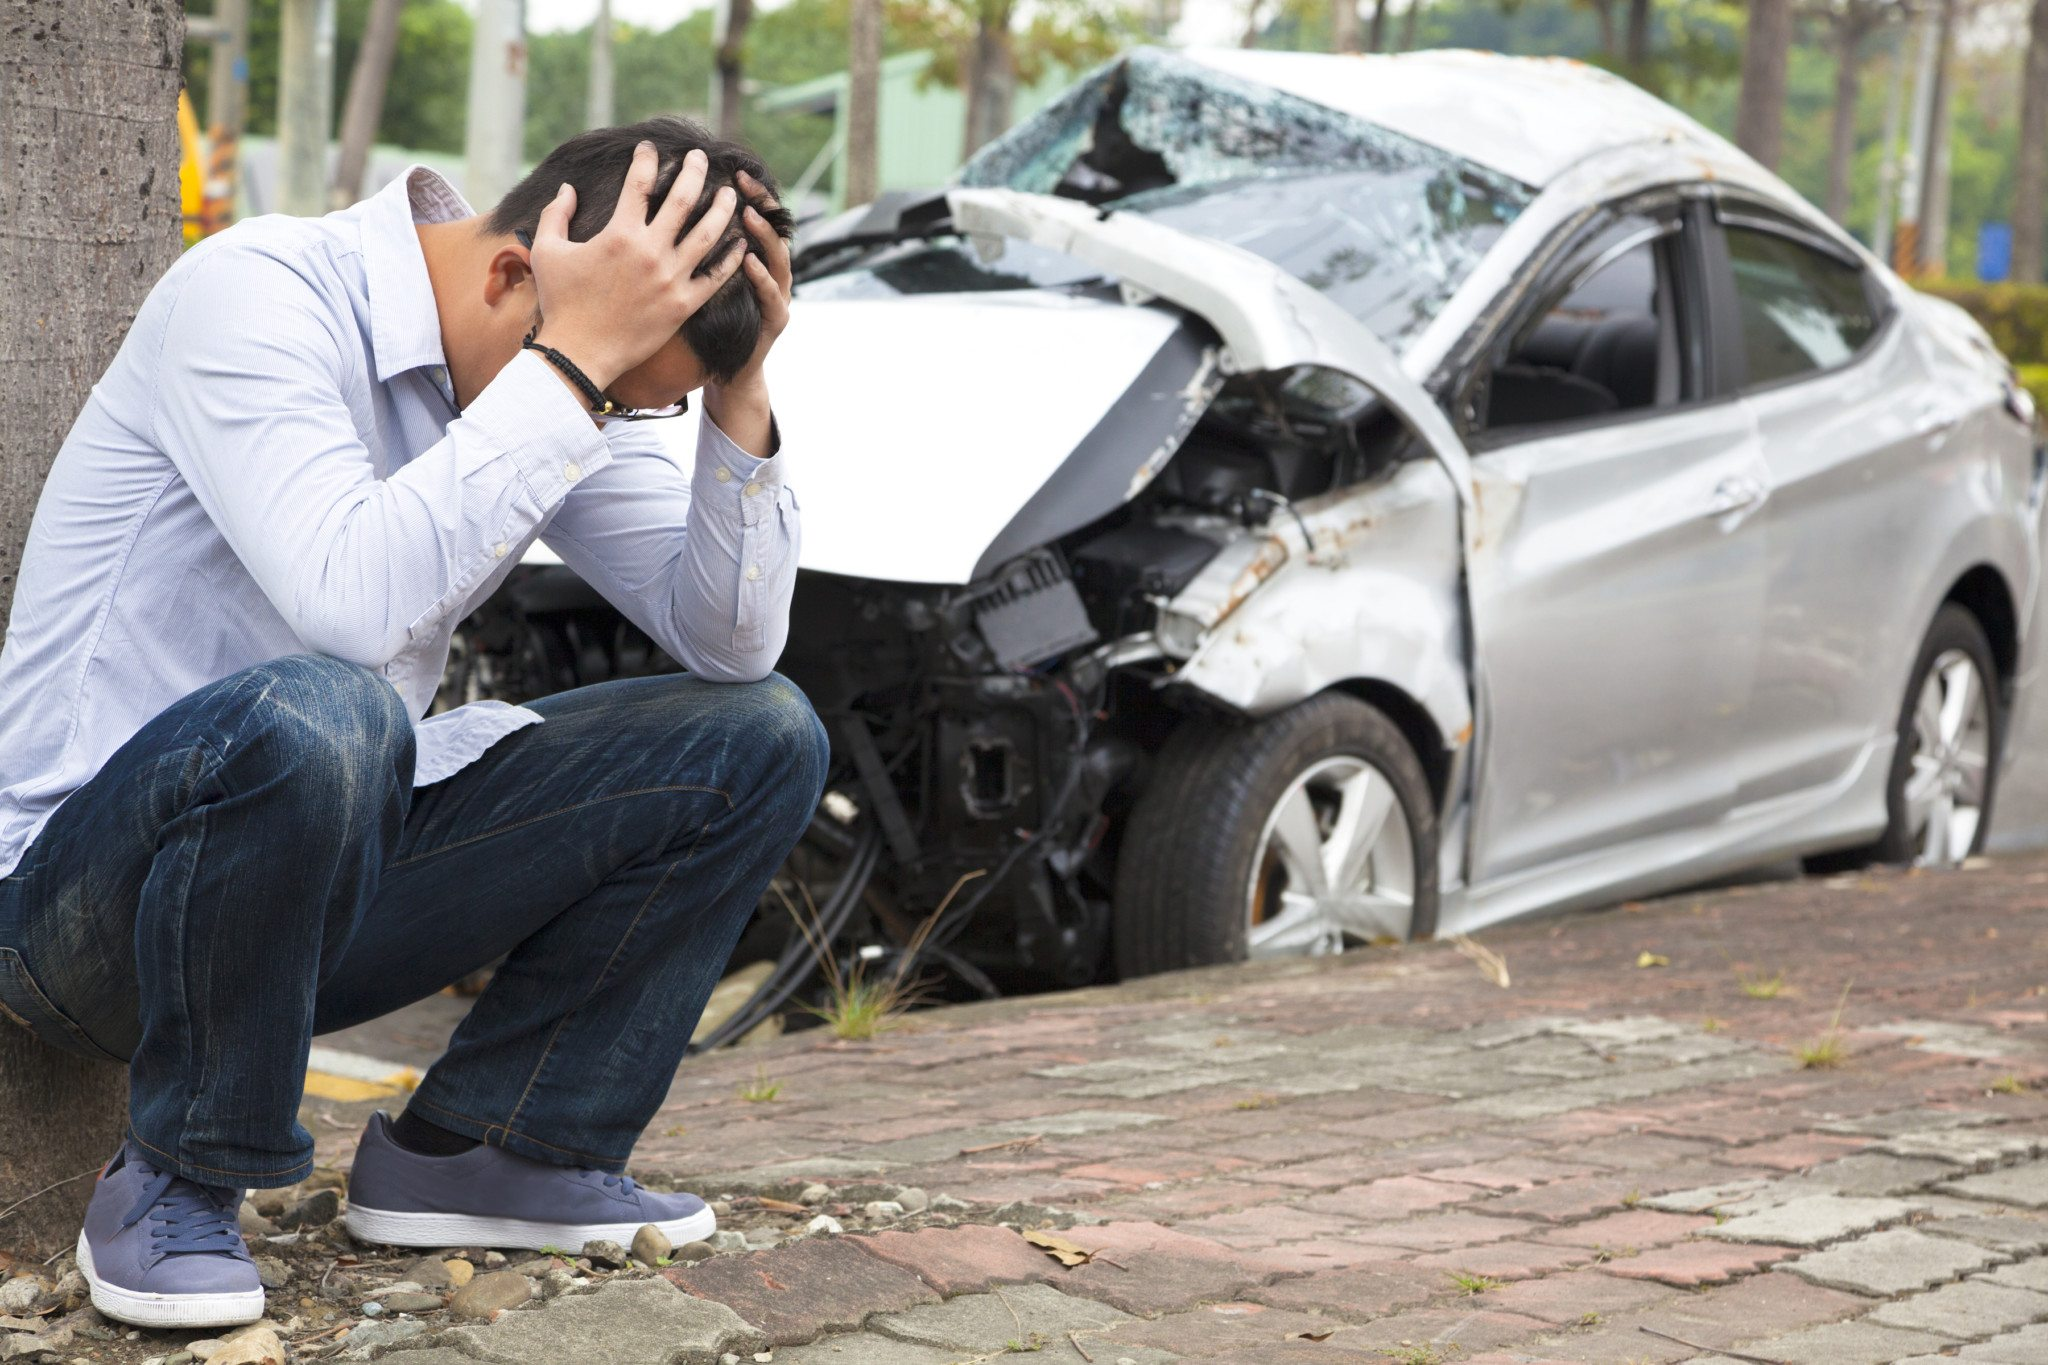 Injured In Accident Delayed Injuries From Car Accidents And What To Do Robert J Debry